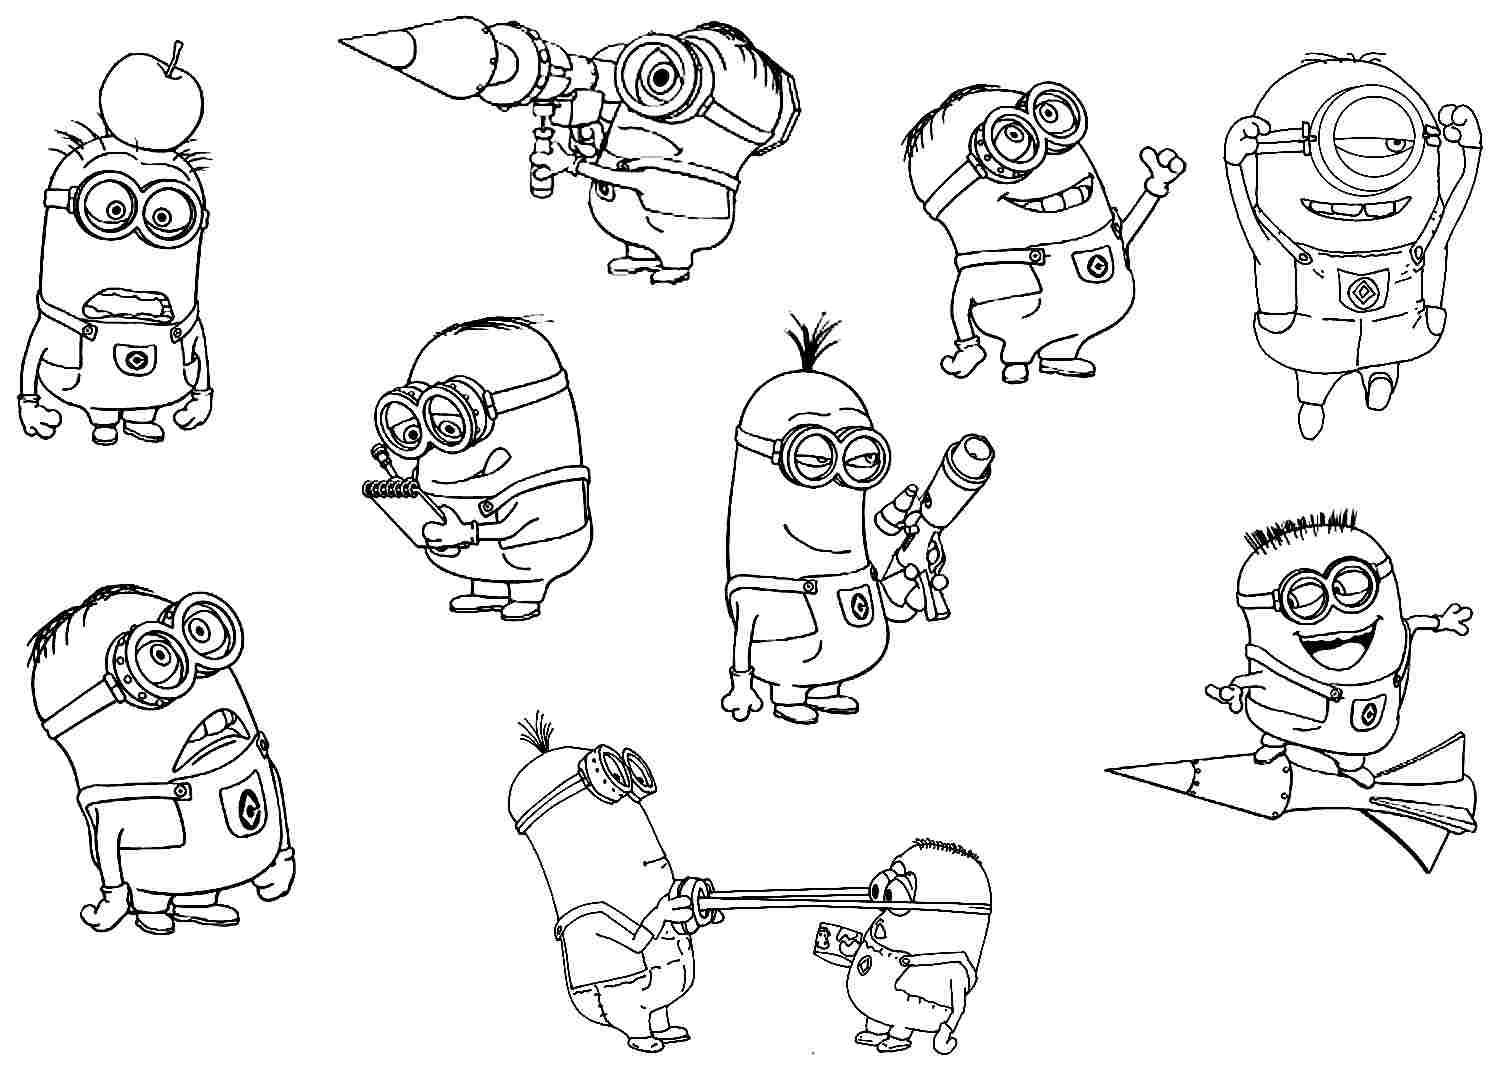 Minion coloring pages free printable - Free Printable Despicable Me Minion Coloring Pages Beautiful